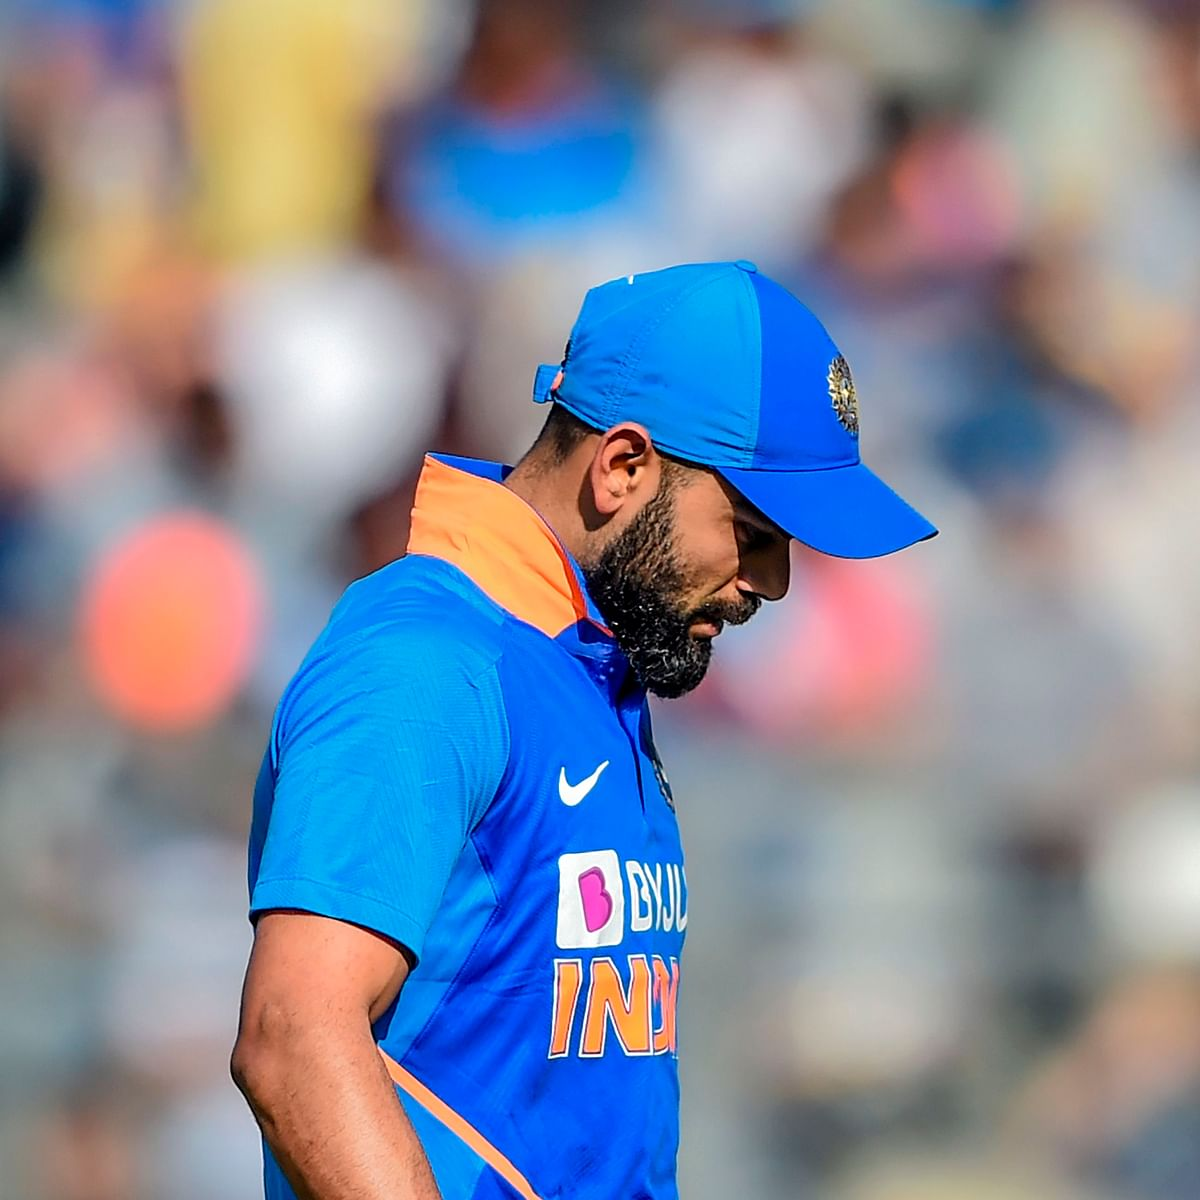 IND vs AUS 2nd ODI: Virat Kohli eyes comeback after No. 3 strategy backfires